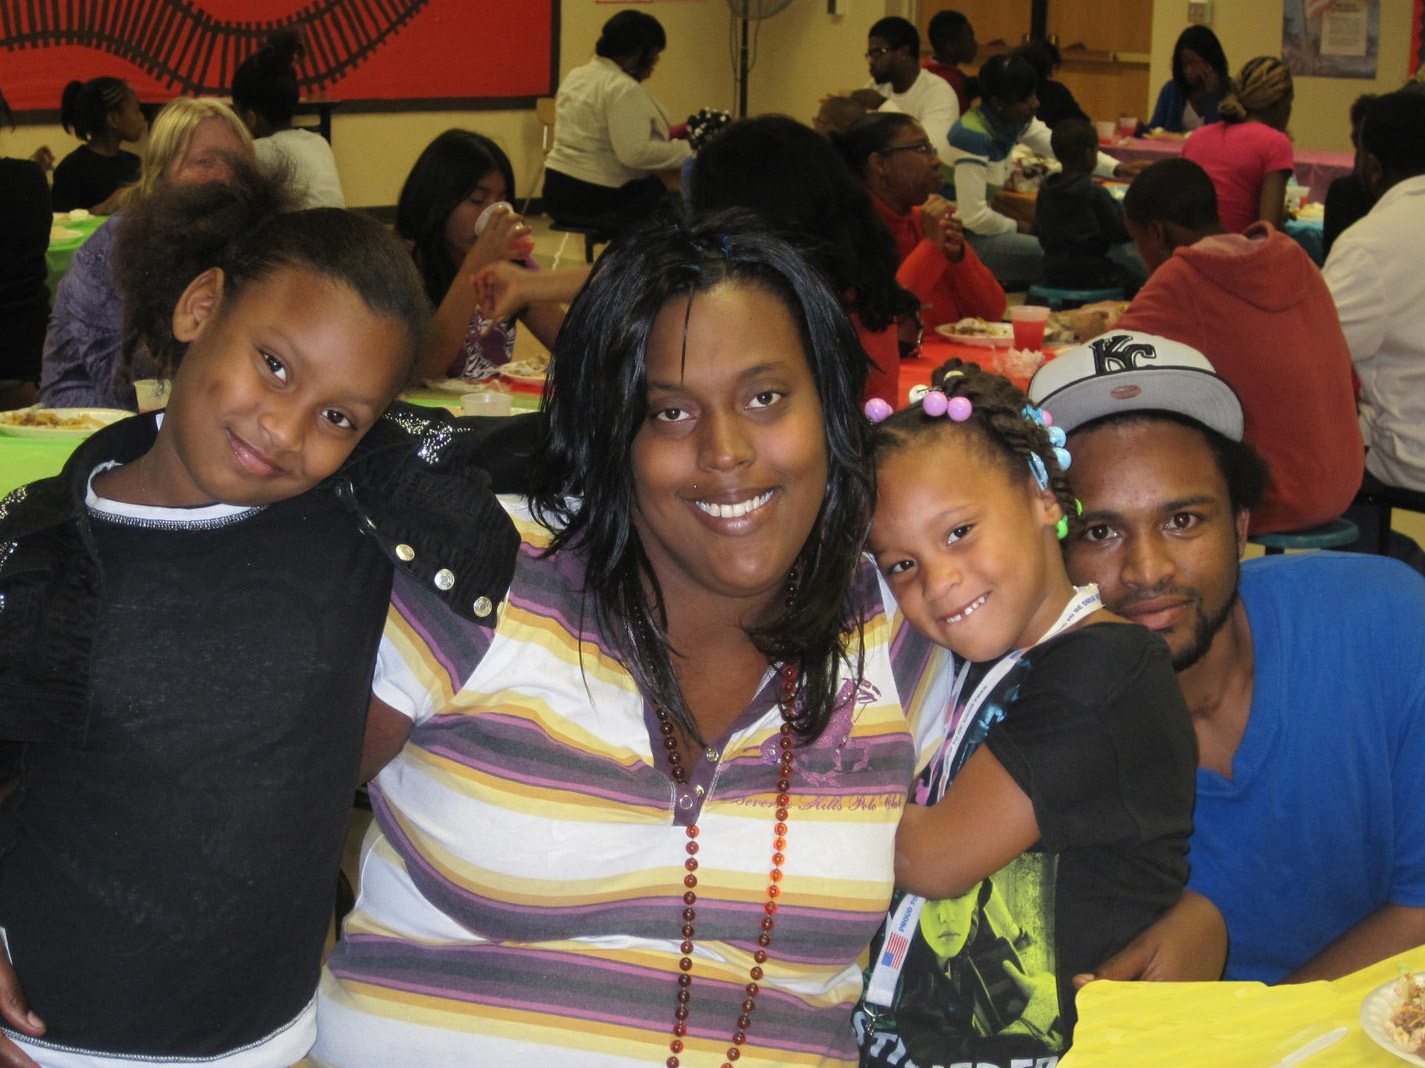 A family at Center Elementary celebrates Lights On Afterschool.